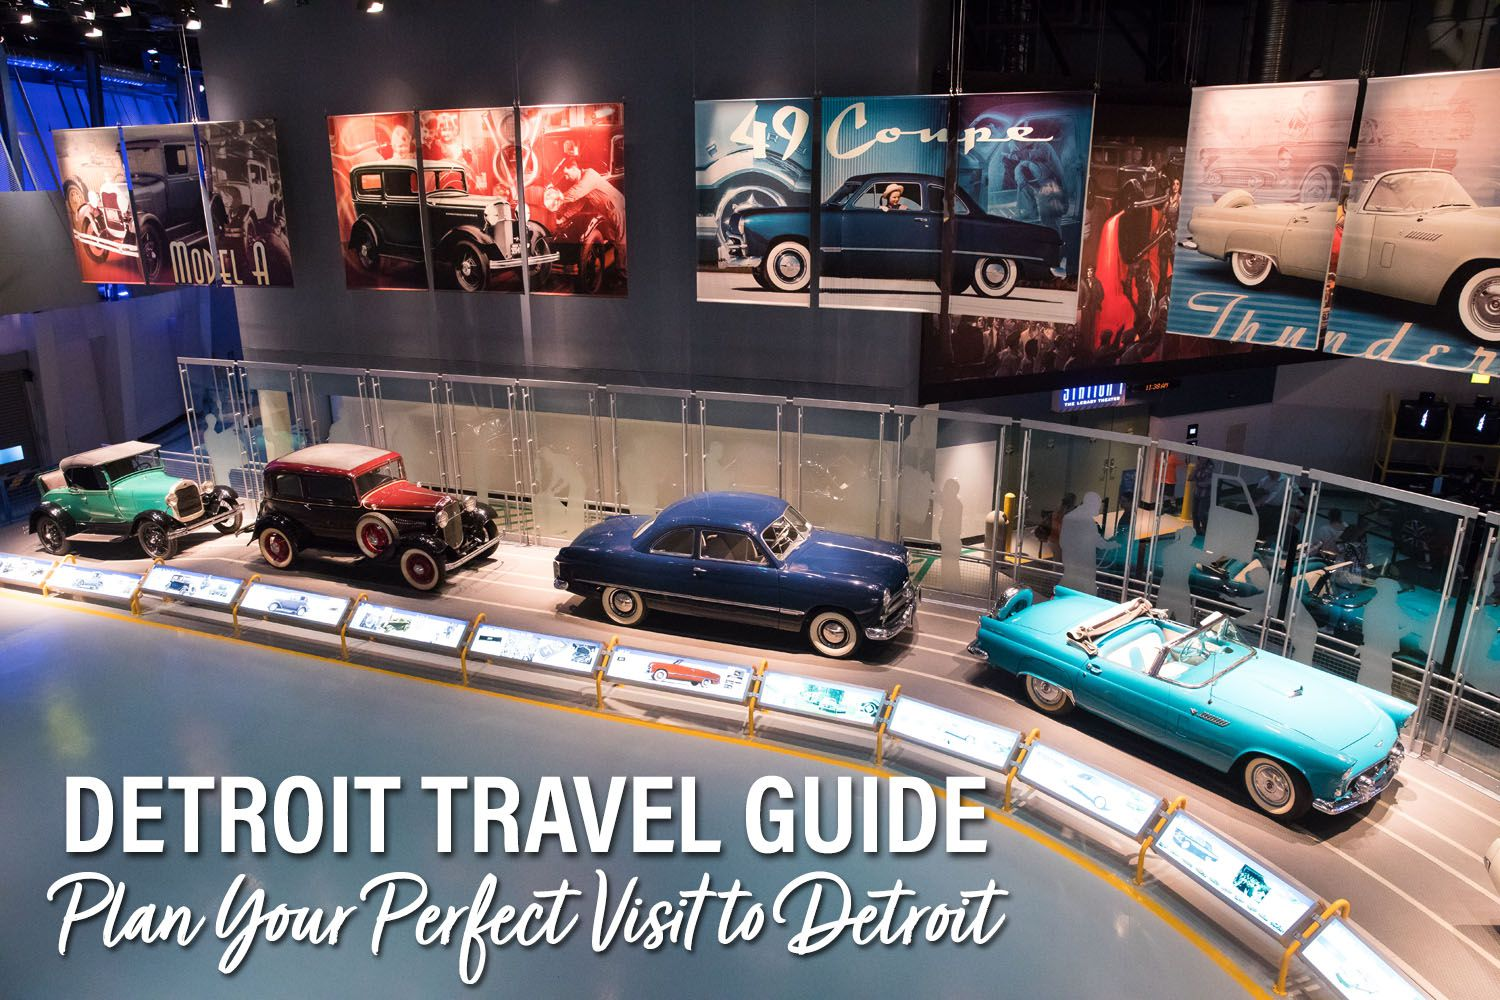 Detroit Travel Guide